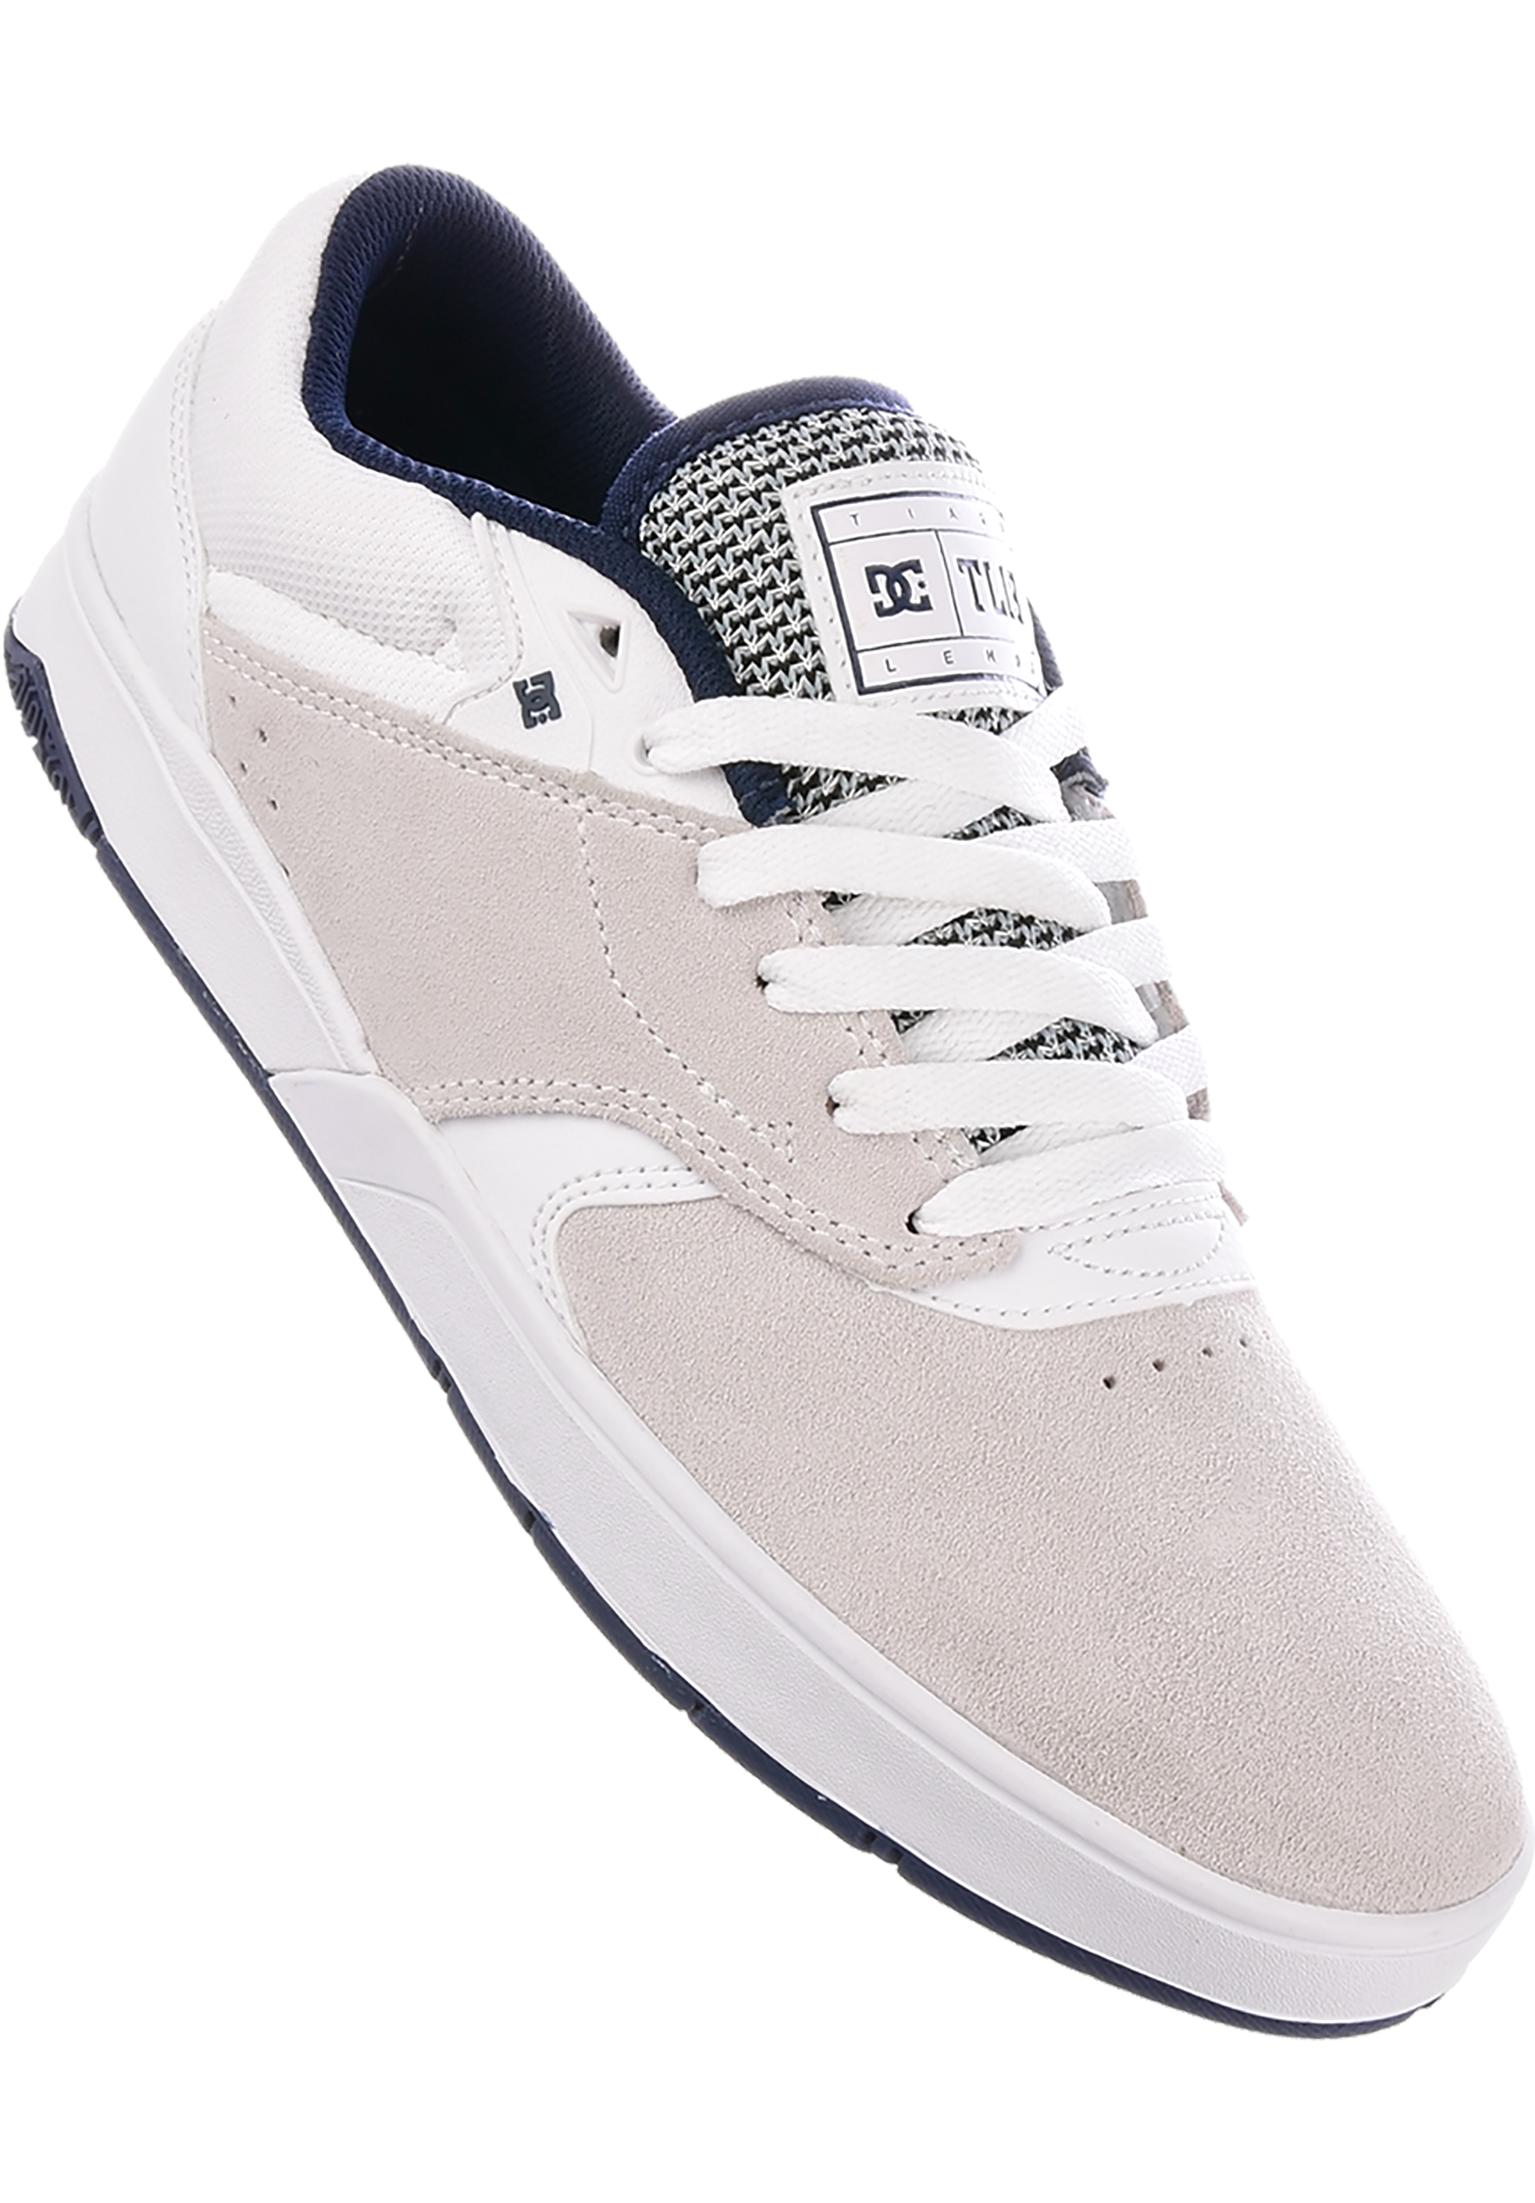 Tiago S DC Shoes All Shoes in white-navy for Men  e434e7773